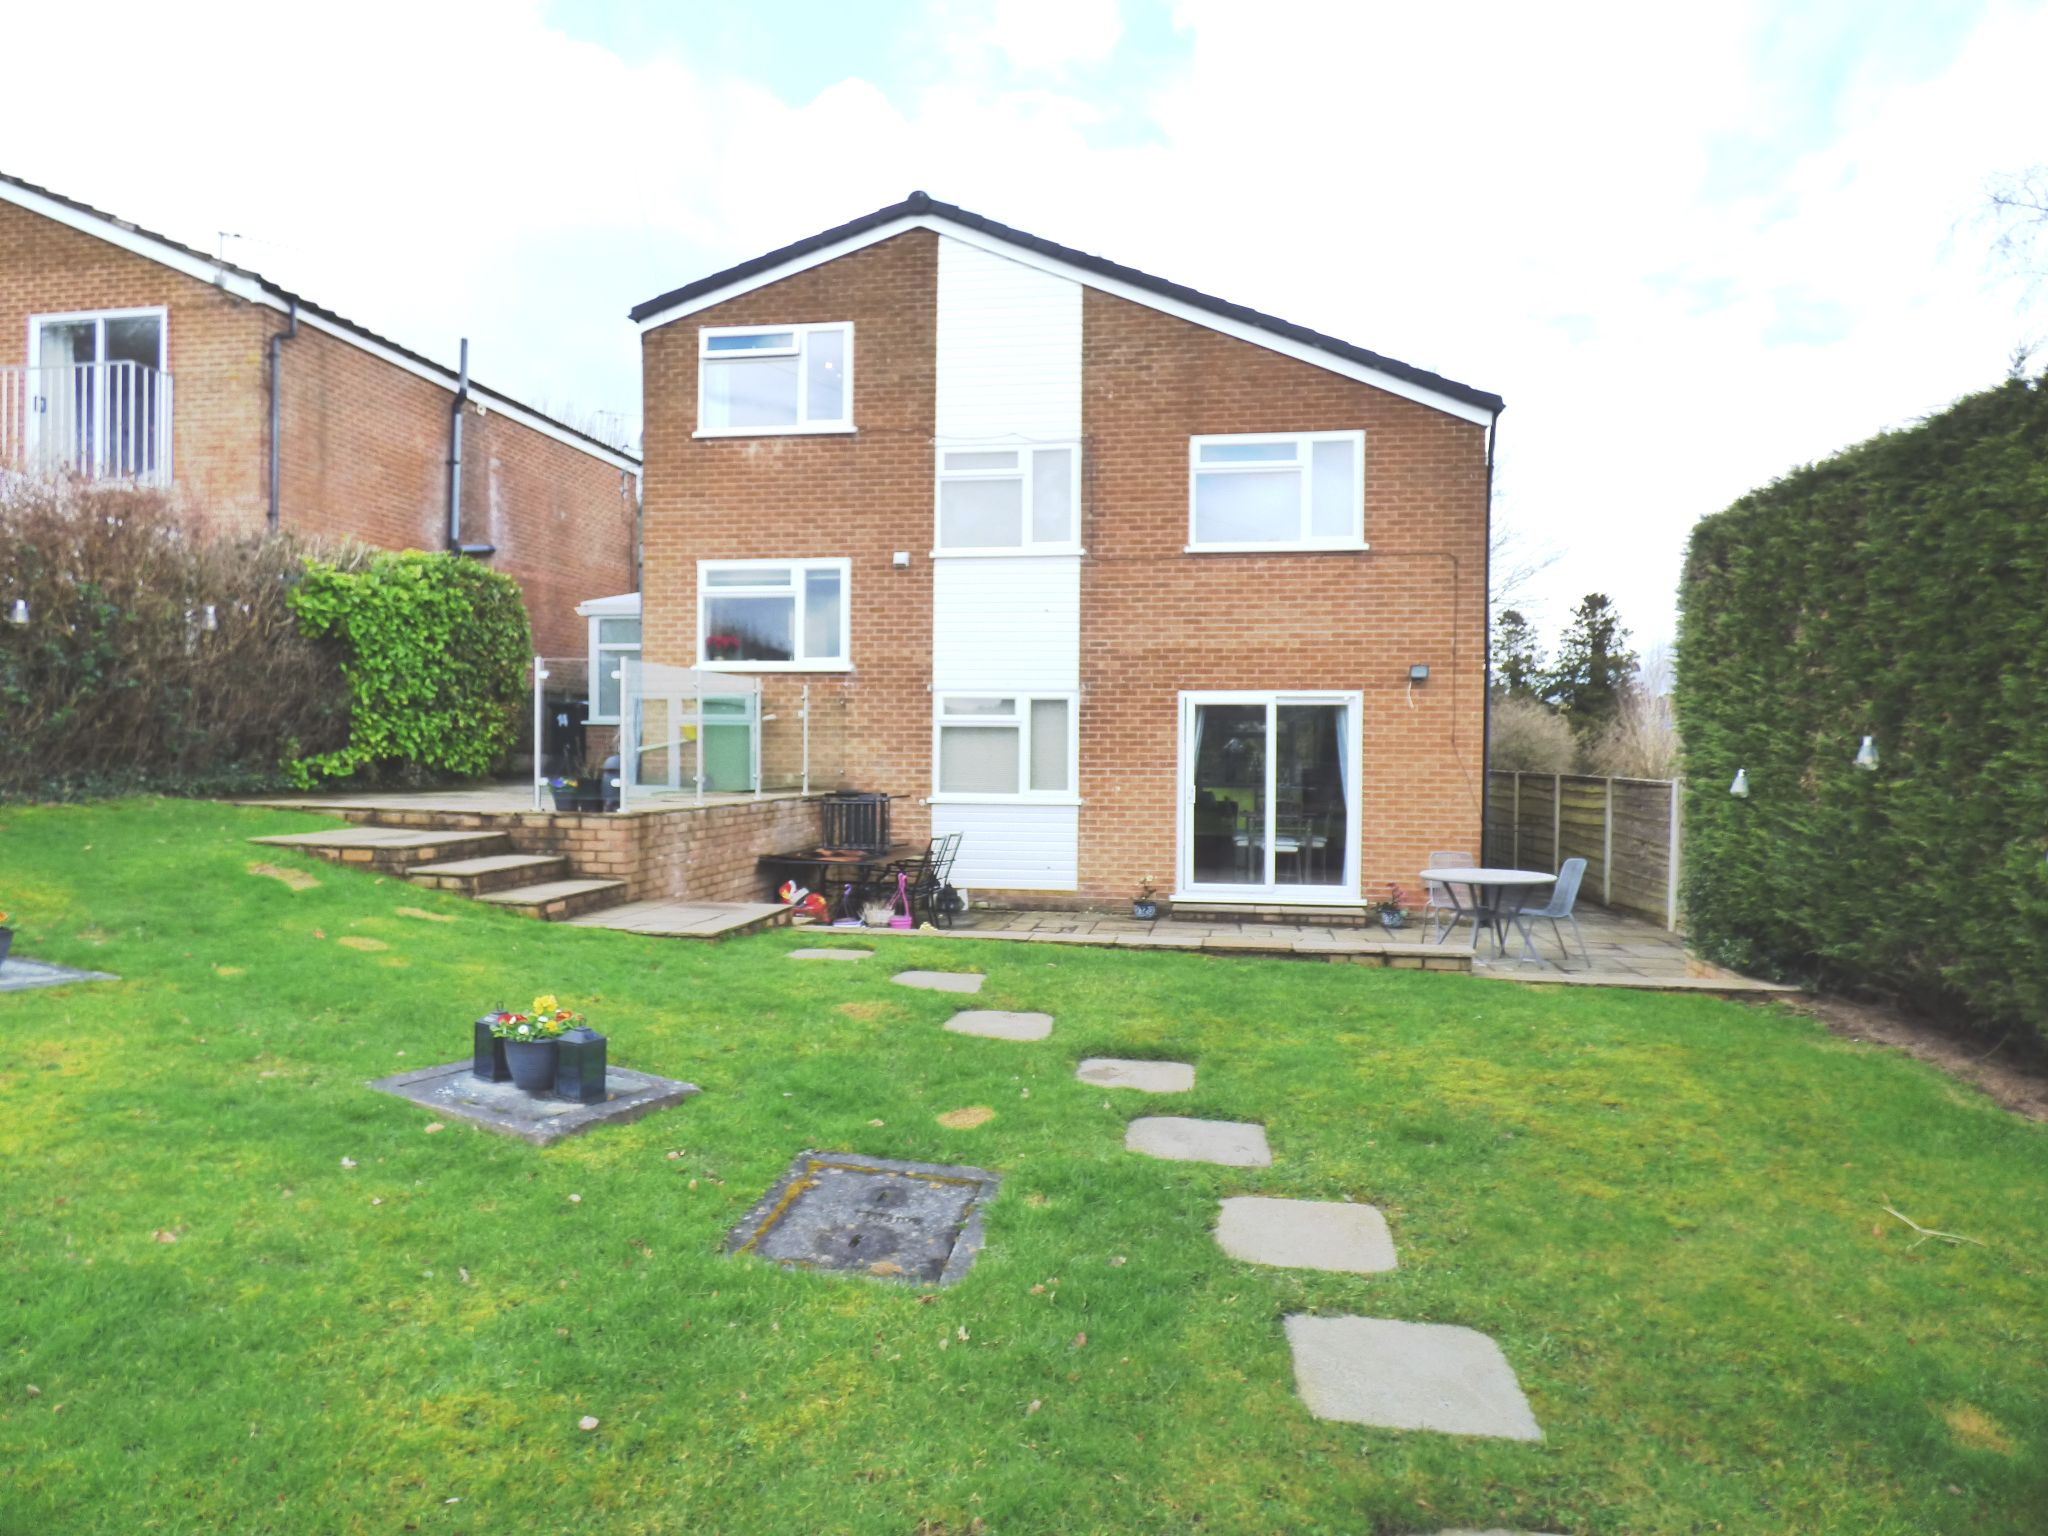 5 Bedroom Detached House For Sale - Rear External